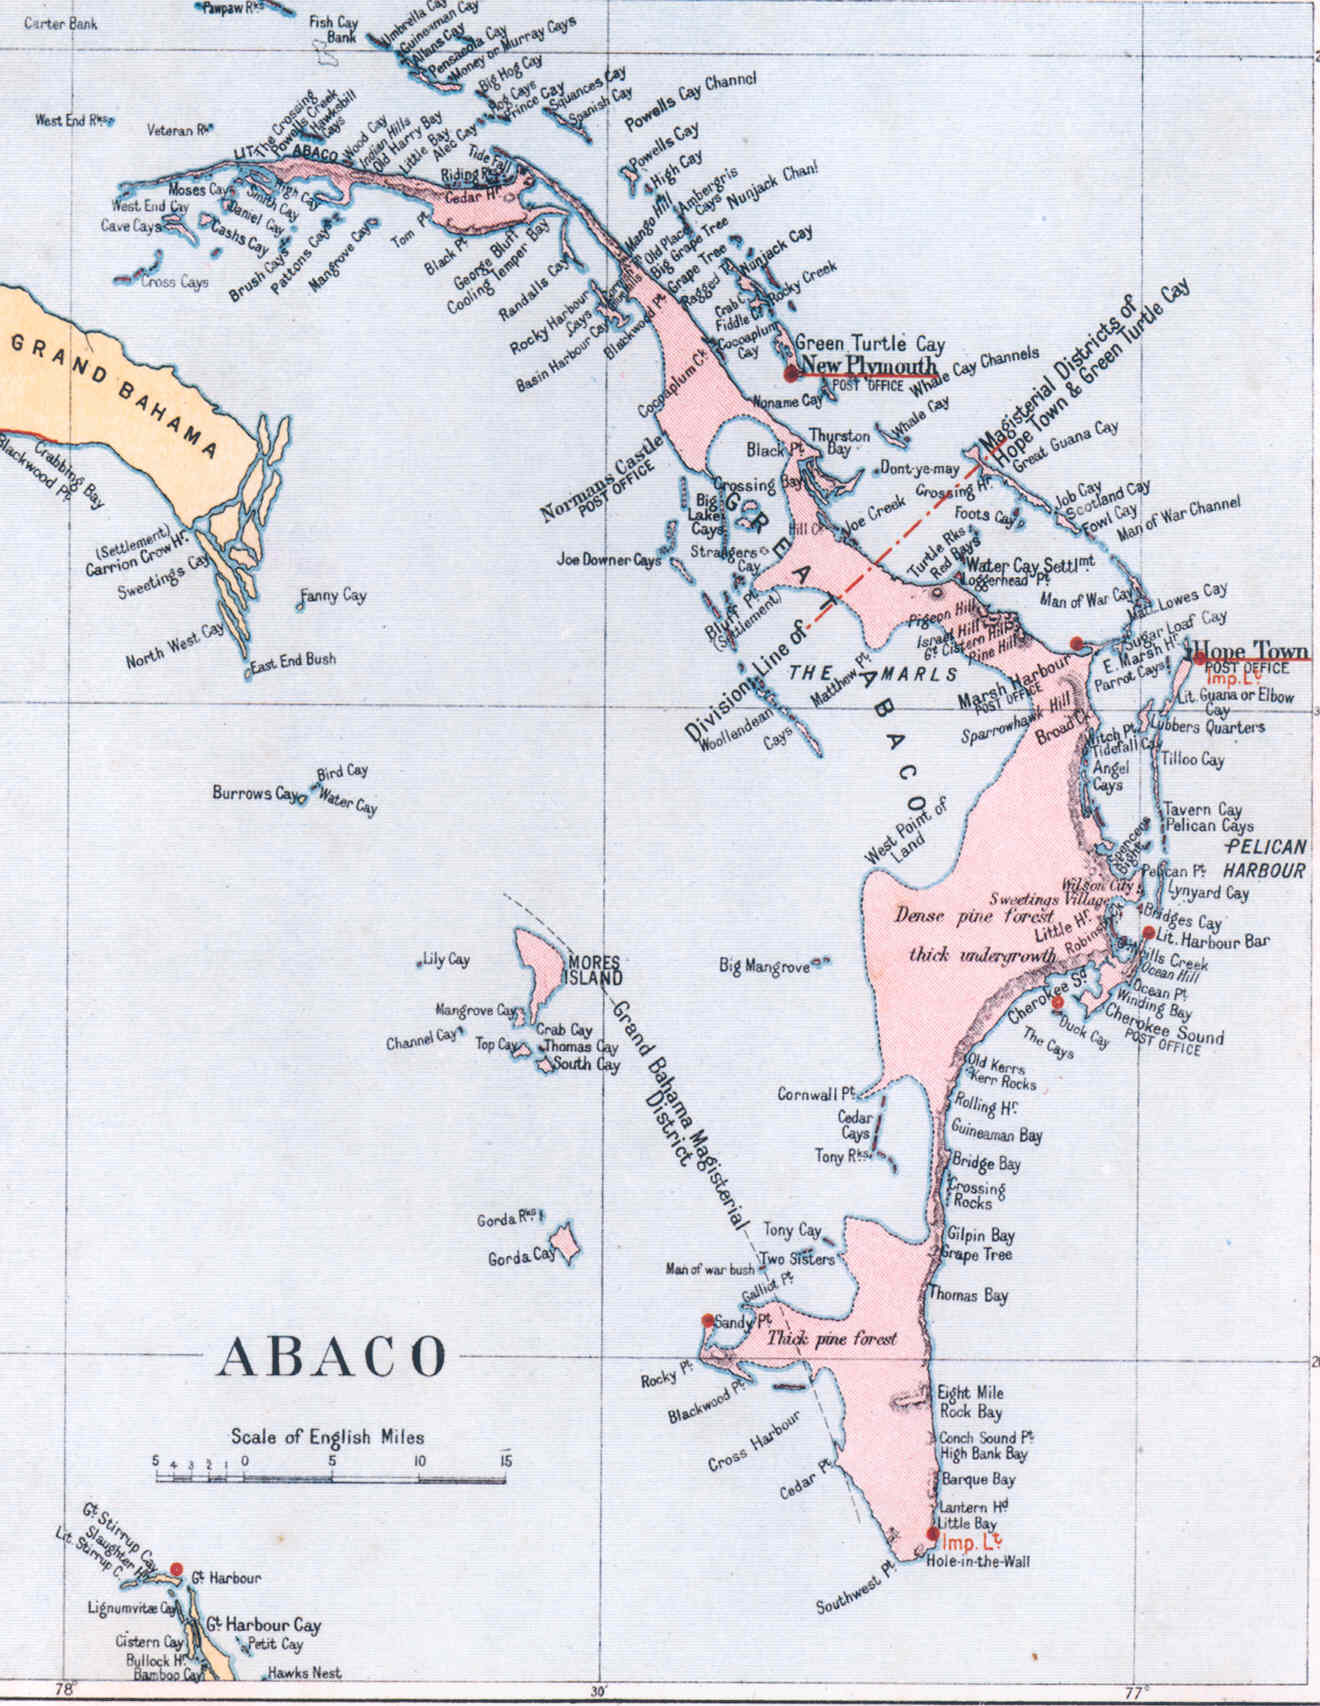 Map of the Bahamas Bahamas On Map on thailand on map, belize on map, el salvador on map, puerto rico on map, grenada on map, cuba on map, tegucigalpa on map, haiti on map, venezuela on map, amazon river on map, falkland islands on map, ivory coast on map, bora bora on map, jamaica on map, guam on map, trinidad on map, costa rica on map, us virgin islands on map, barbados on map, central america on map,